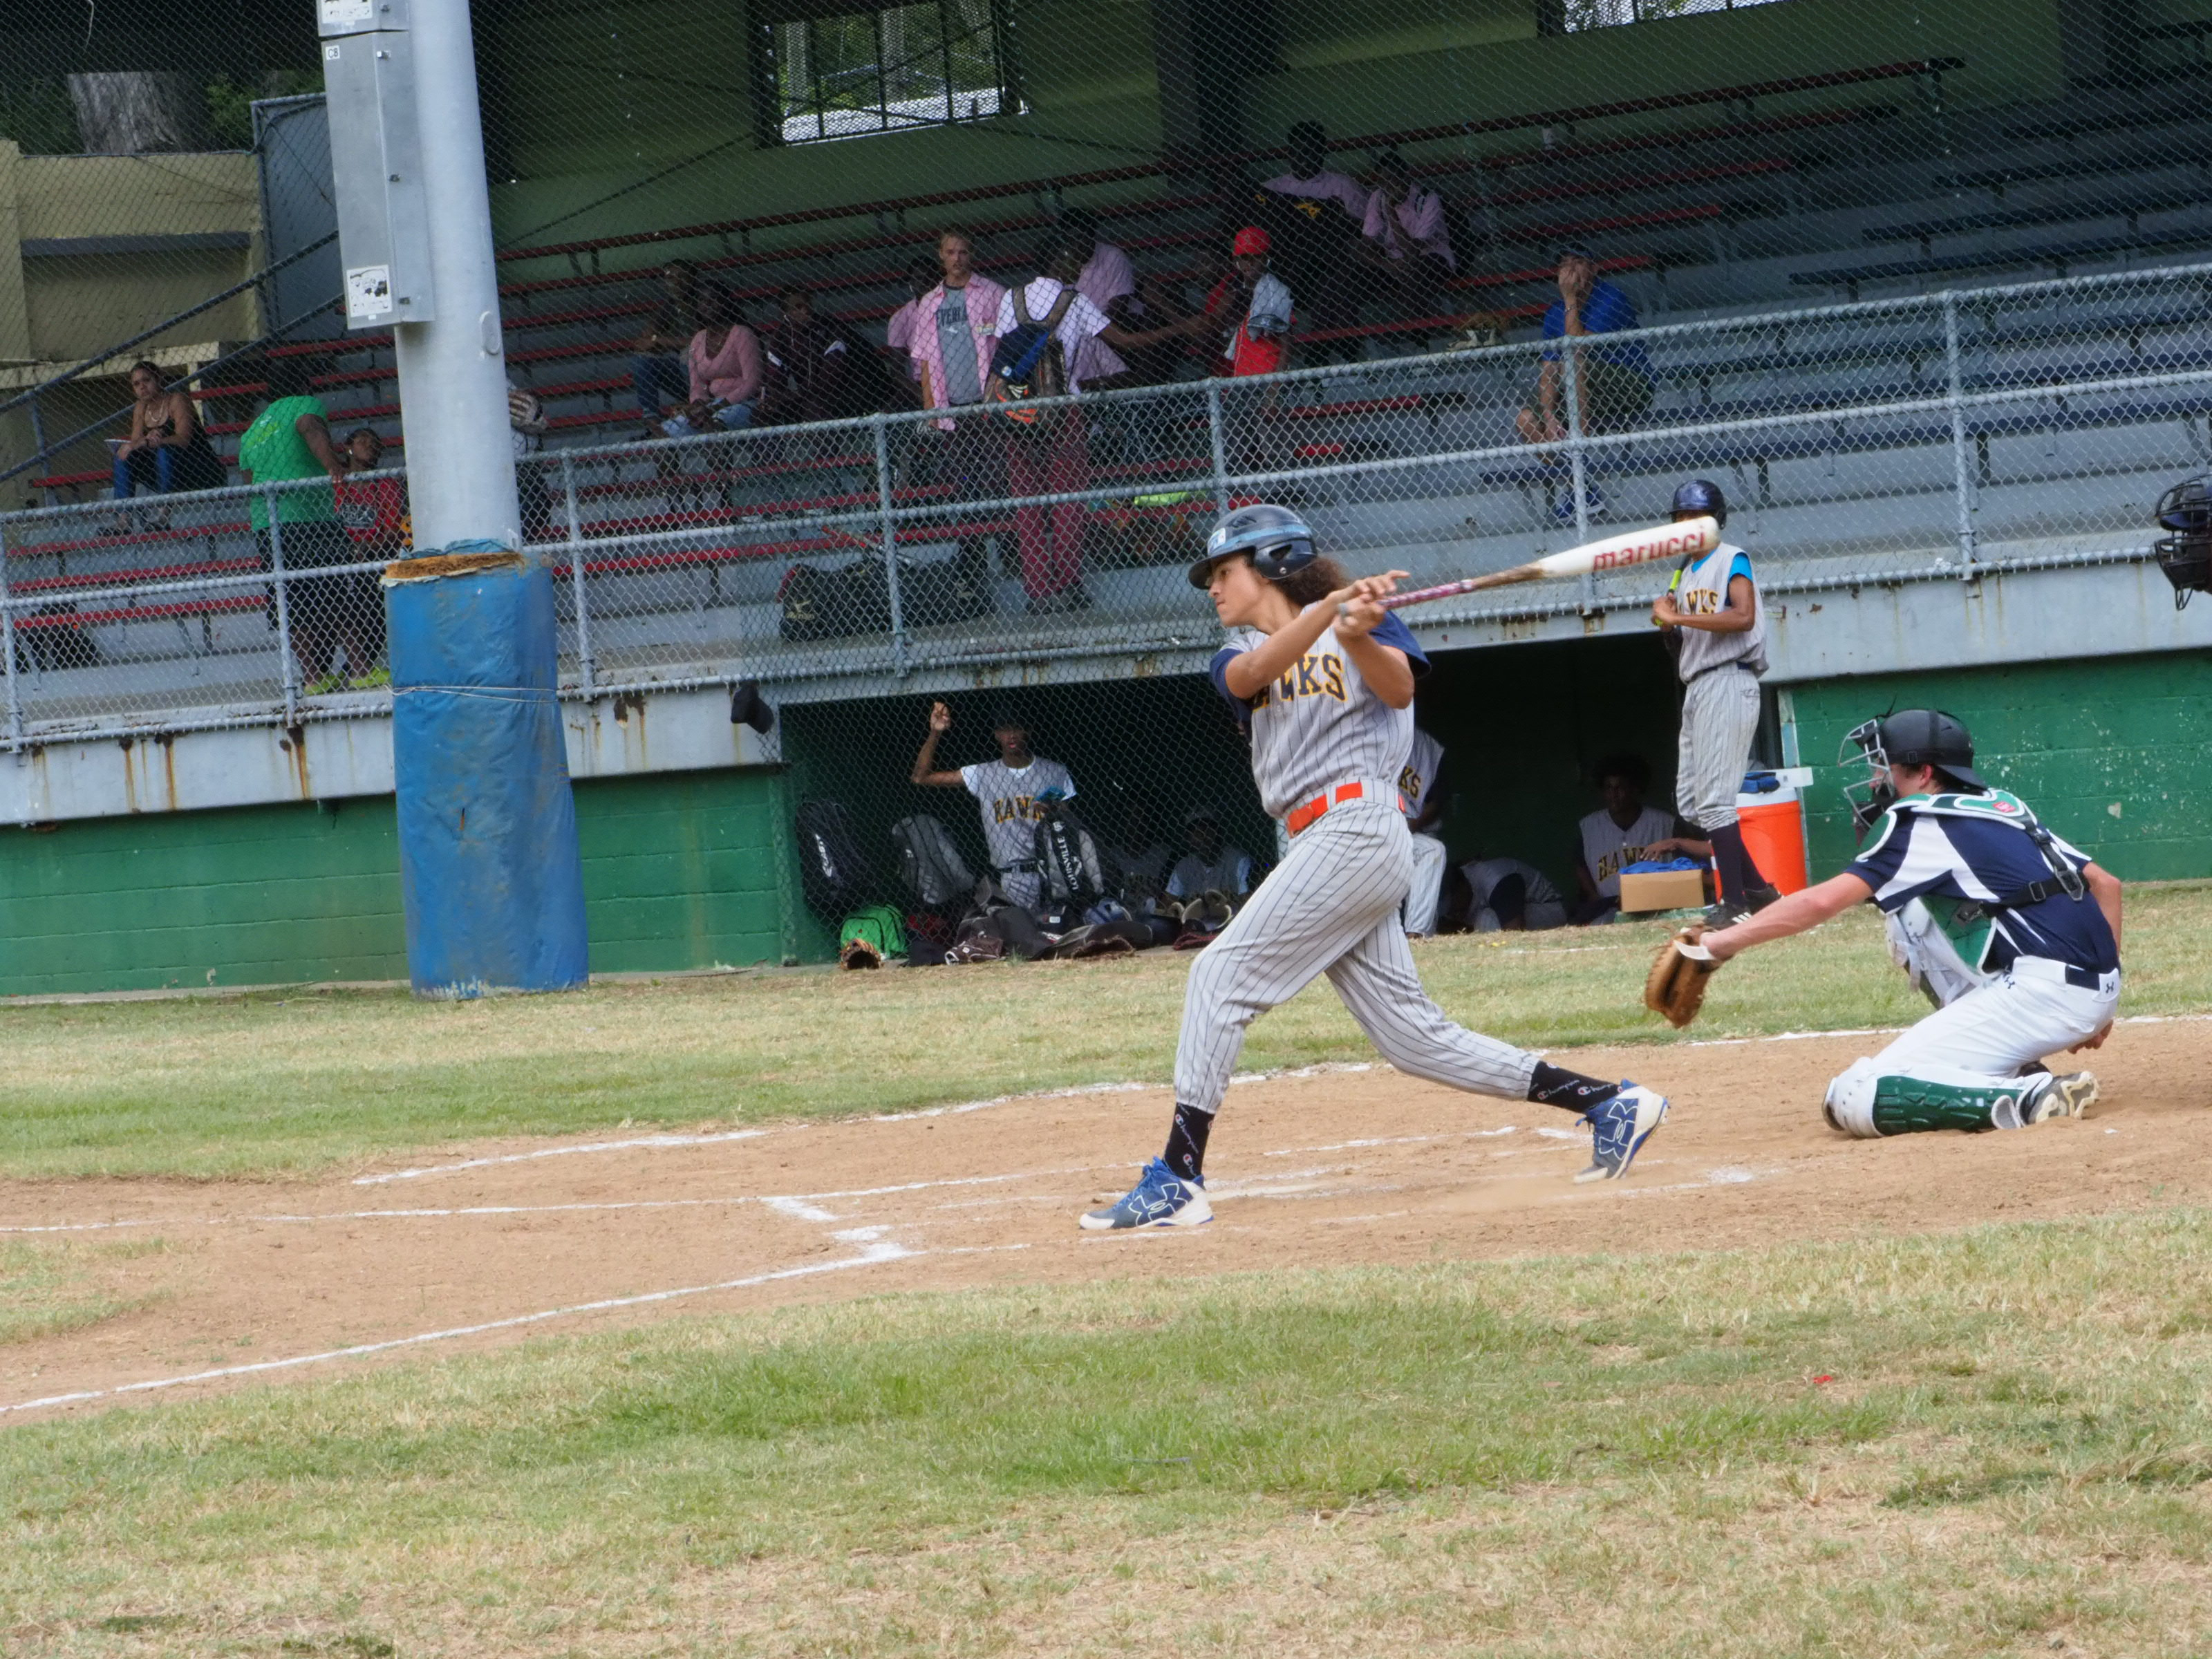 the Hawks take a swing at the Team Avenue Baseball's pitch.jpg